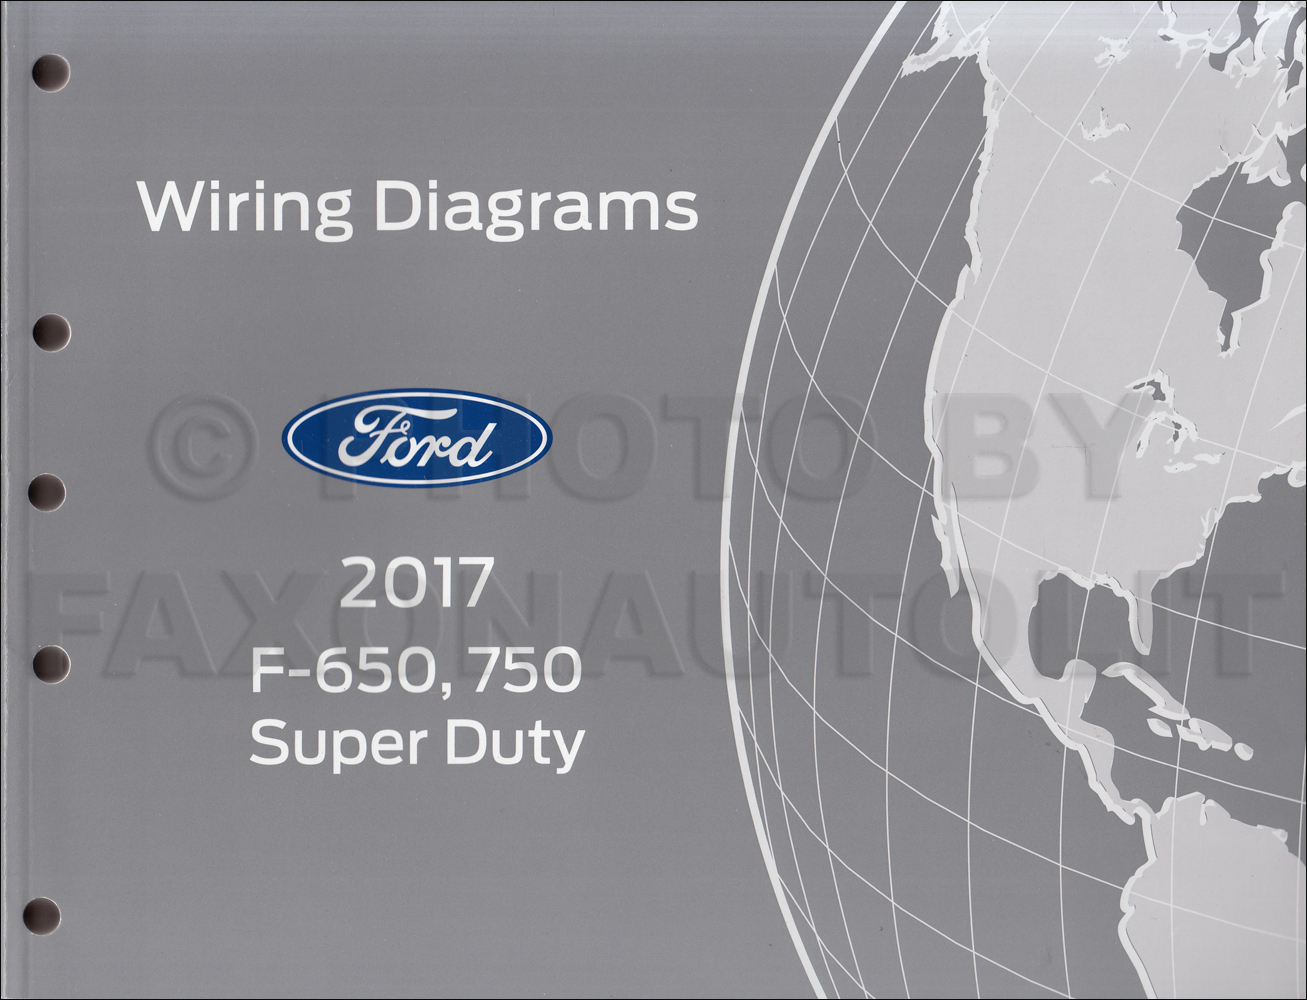 Wiring Diagram For Ford 750 Circuit Schema 2001 F750 2017 F 650 And Super Duty Truck Manual Radio